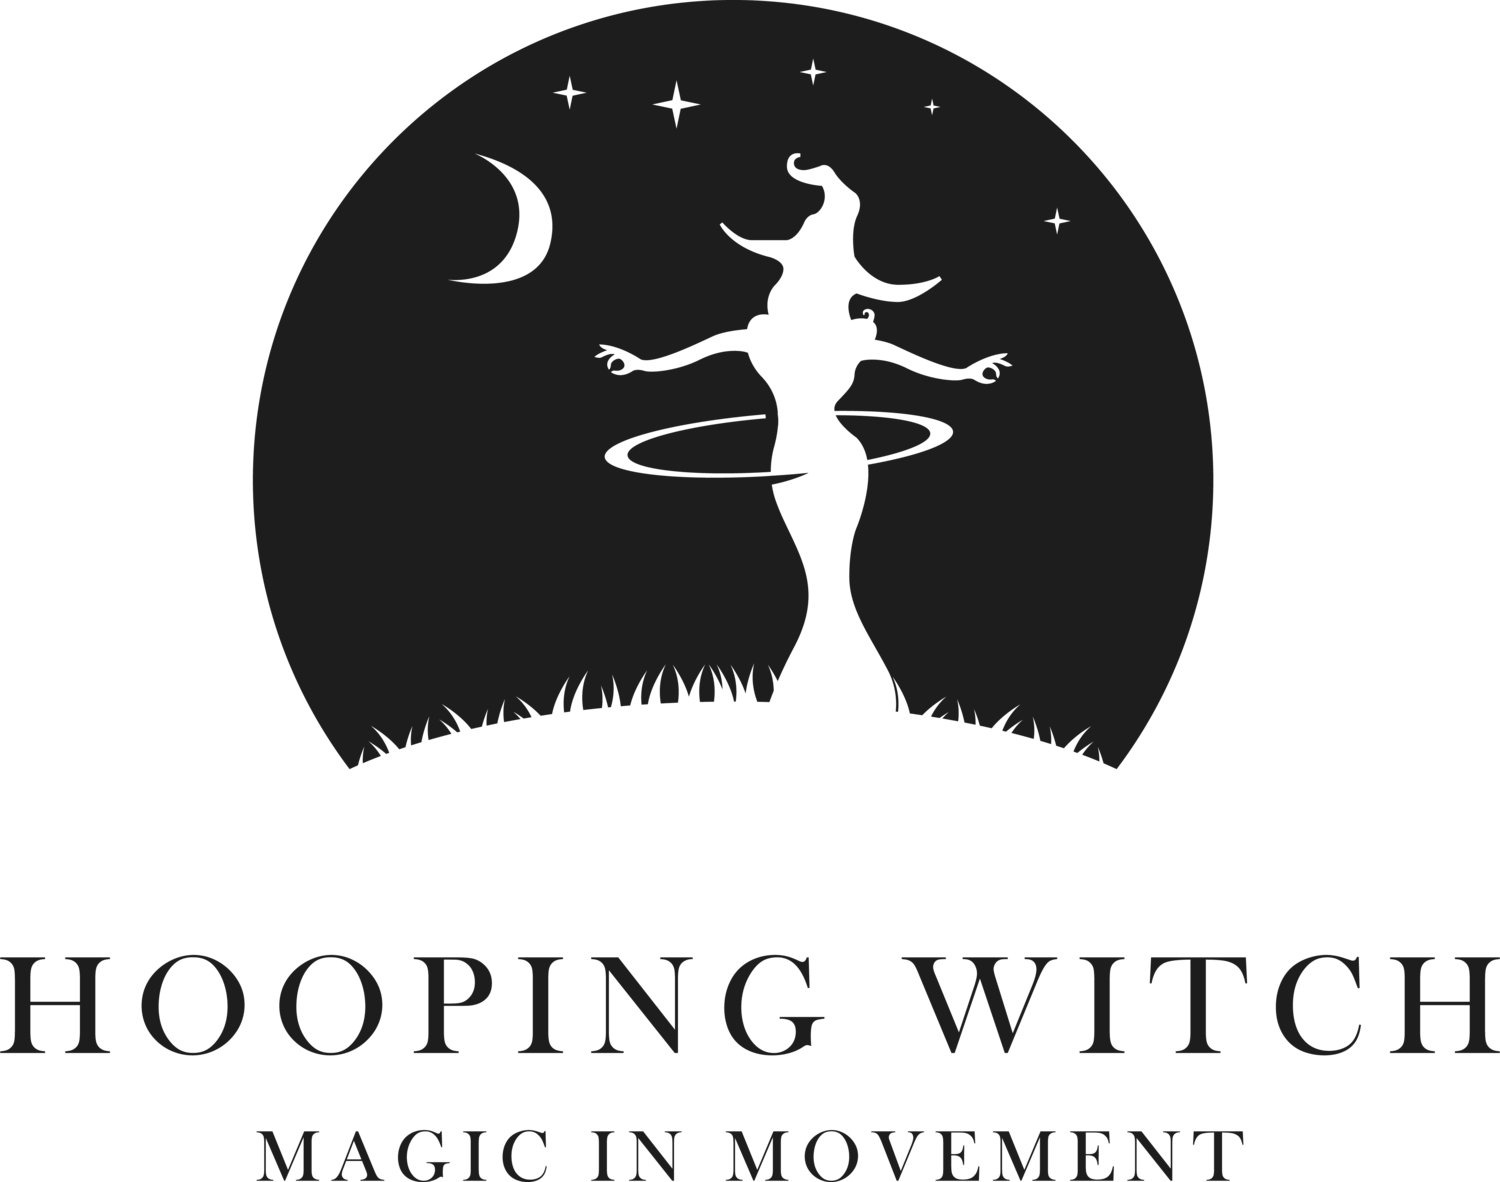 Hooping Witch